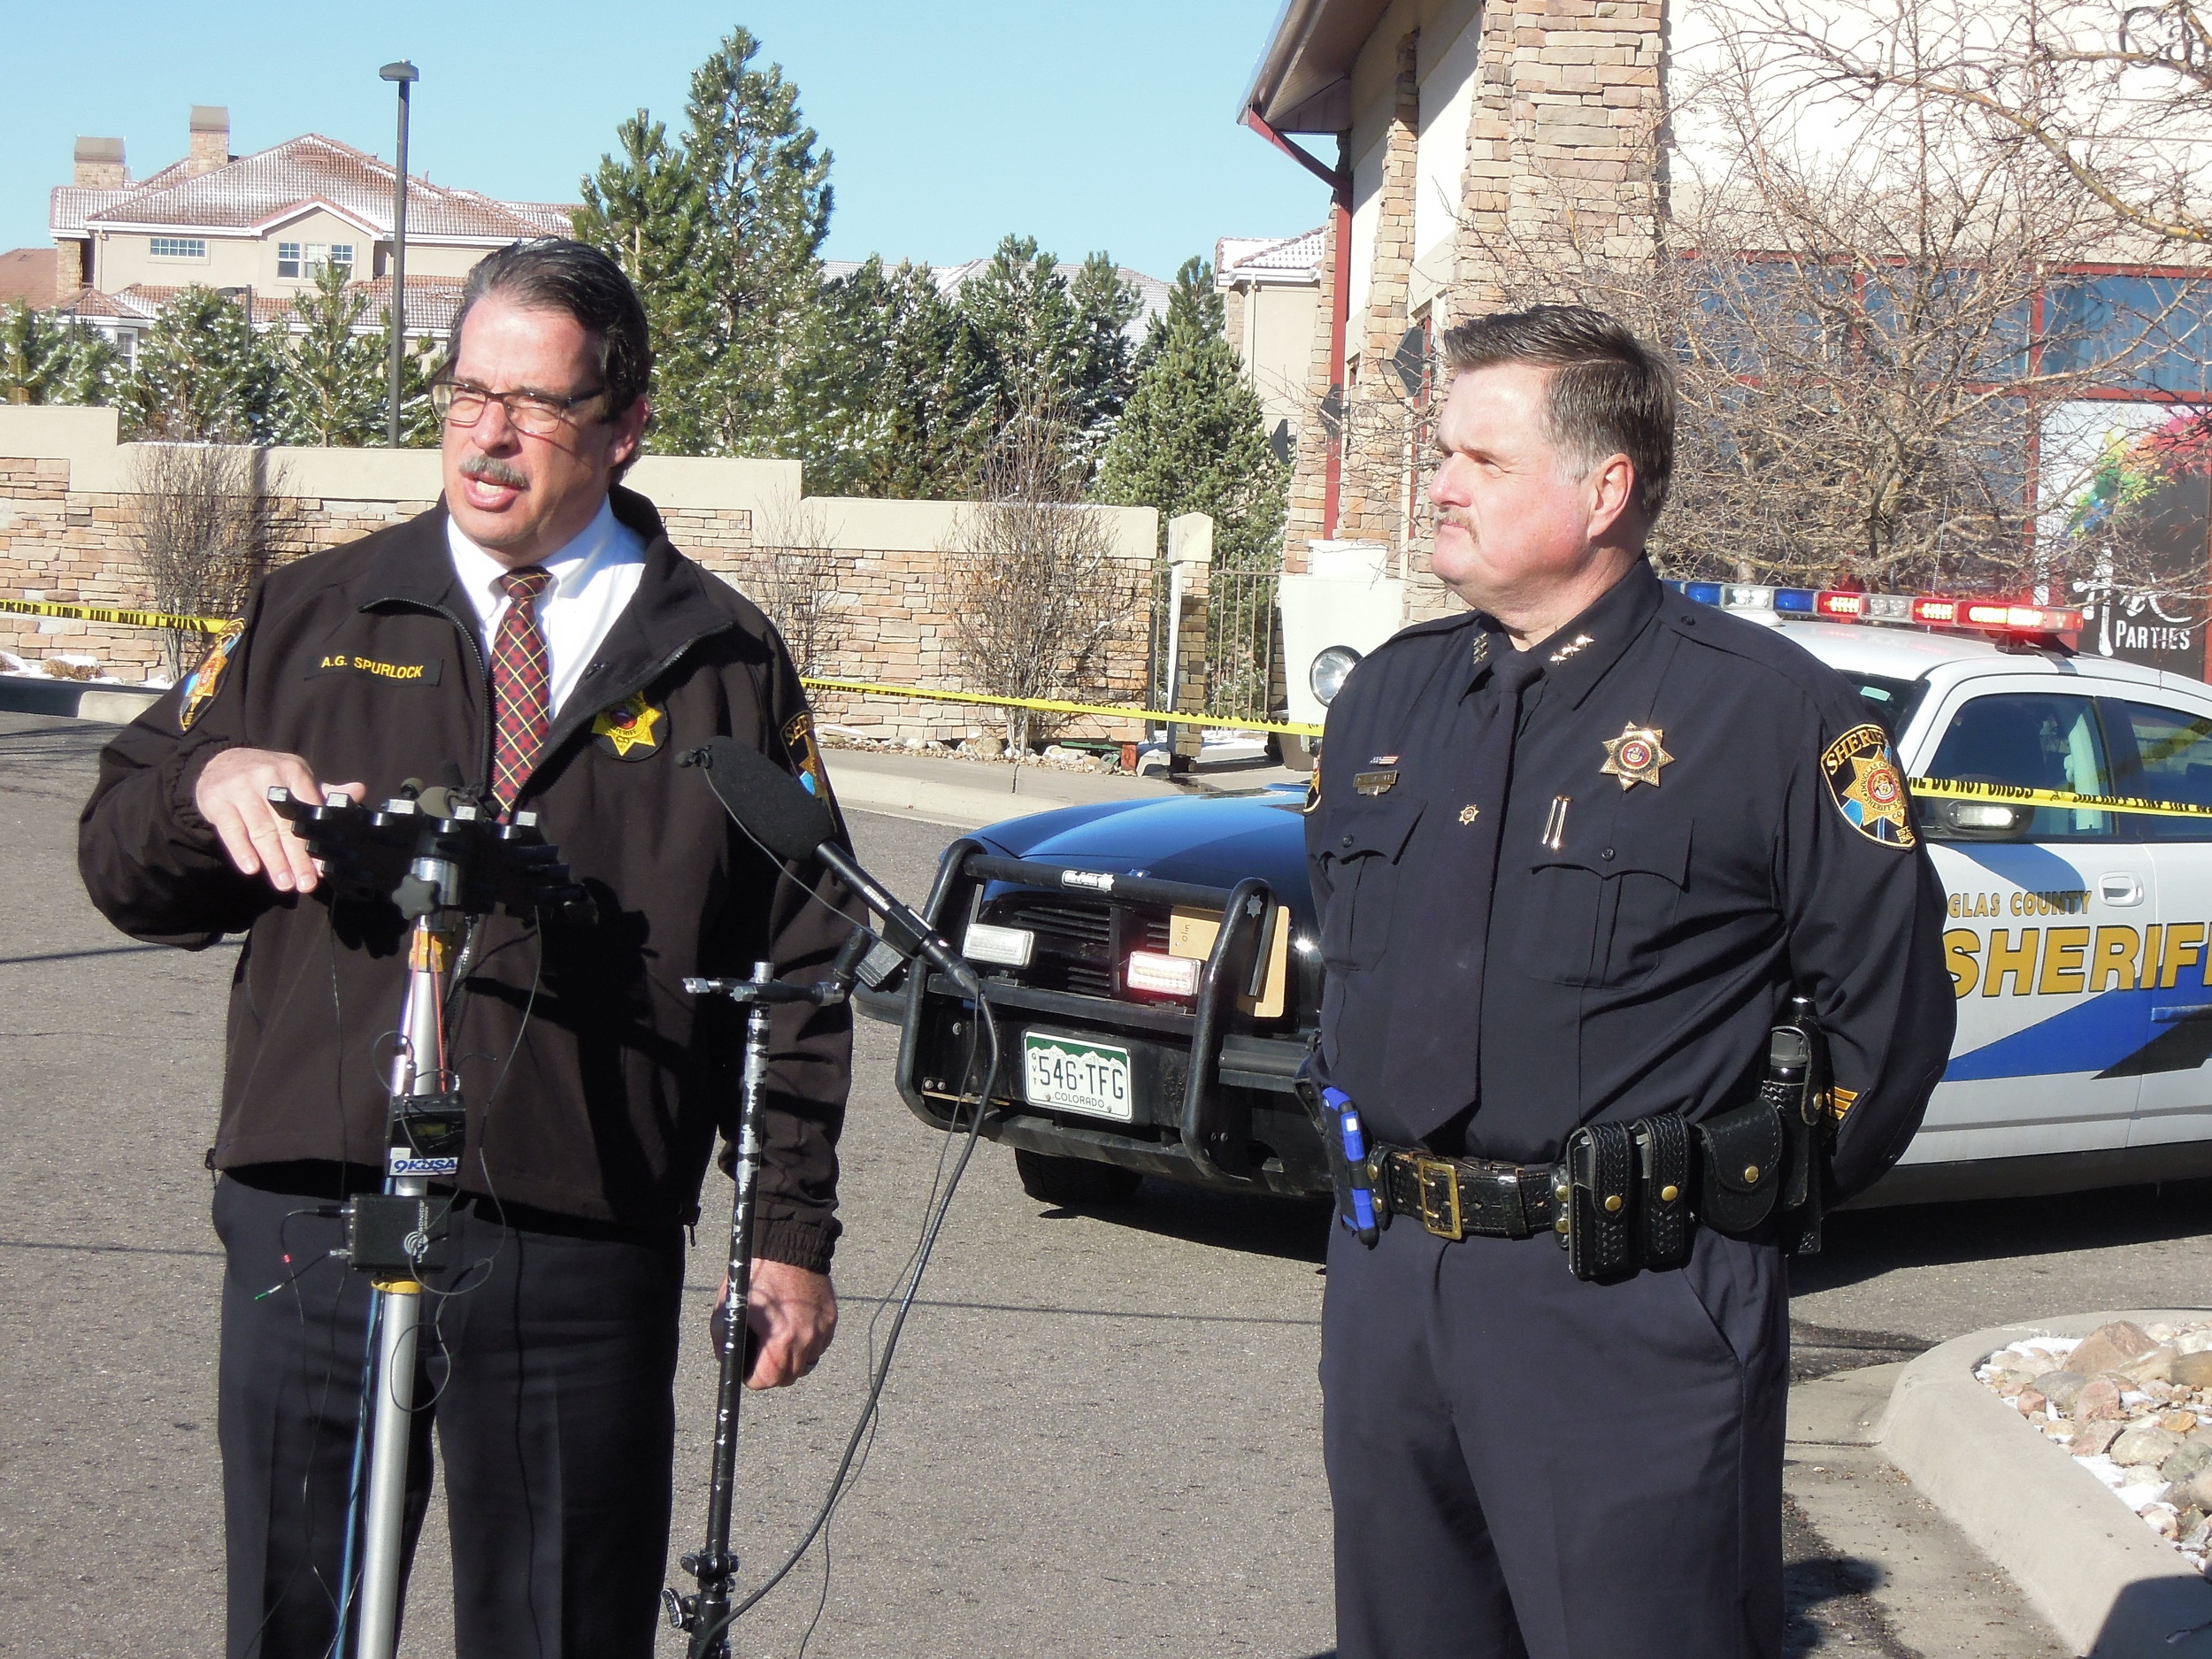 Douglas County Sheriff David Weaver, right, and Undersheriff Tony Spurlock addressed the media after the carjacking suspect was arrested the morning of March 12.